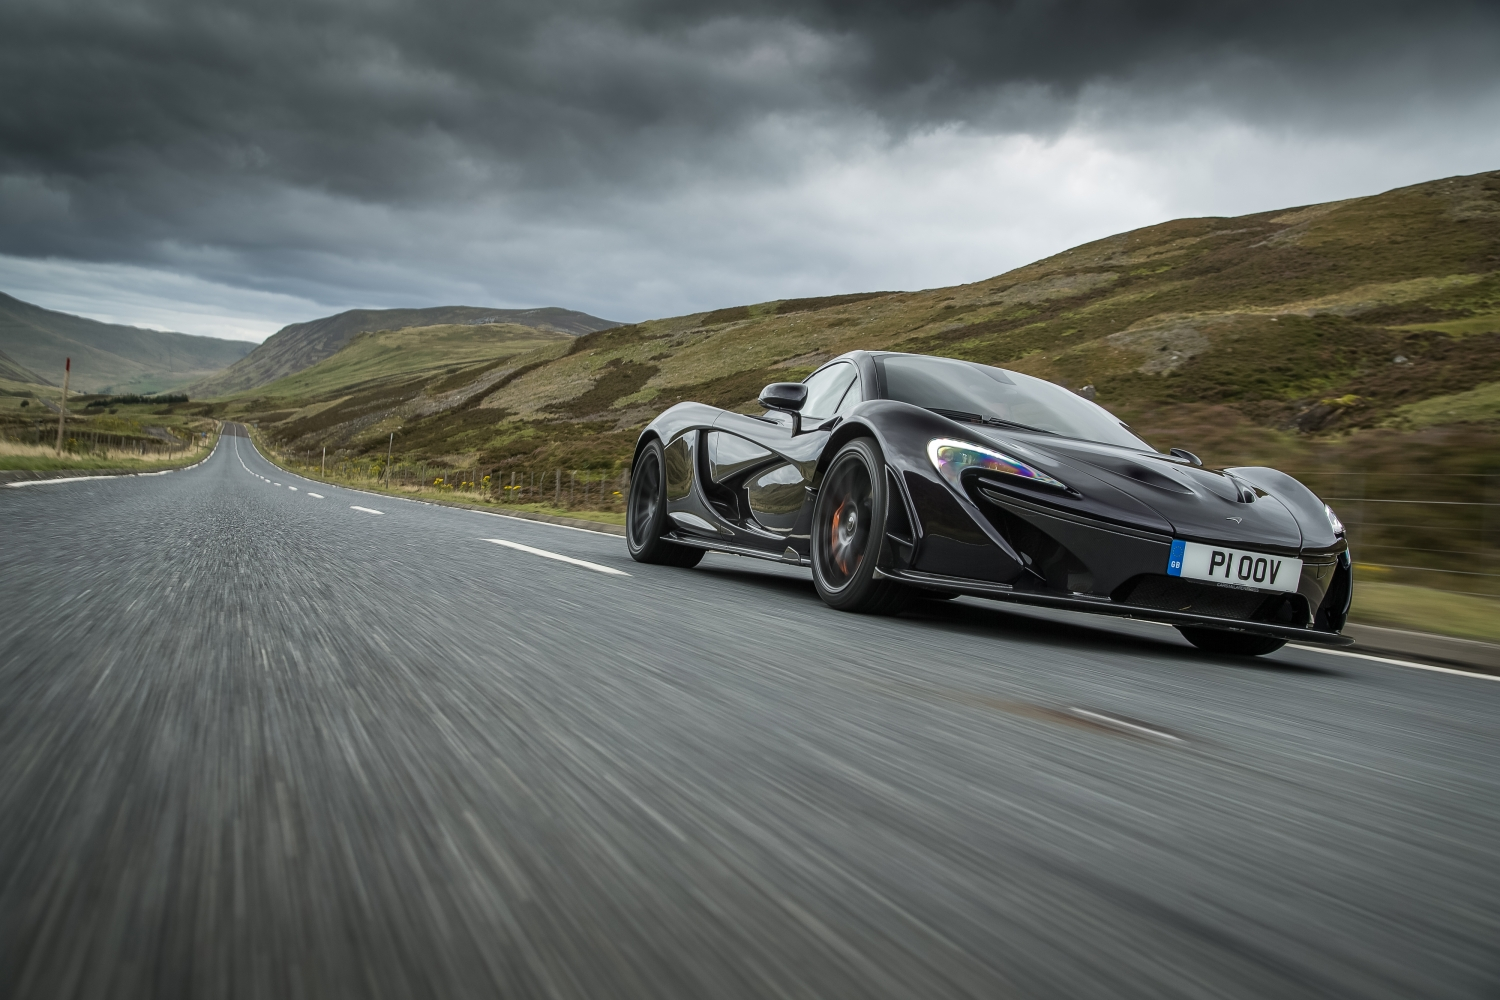 McLaren P1 hypercar celebrates half a decade in pole position